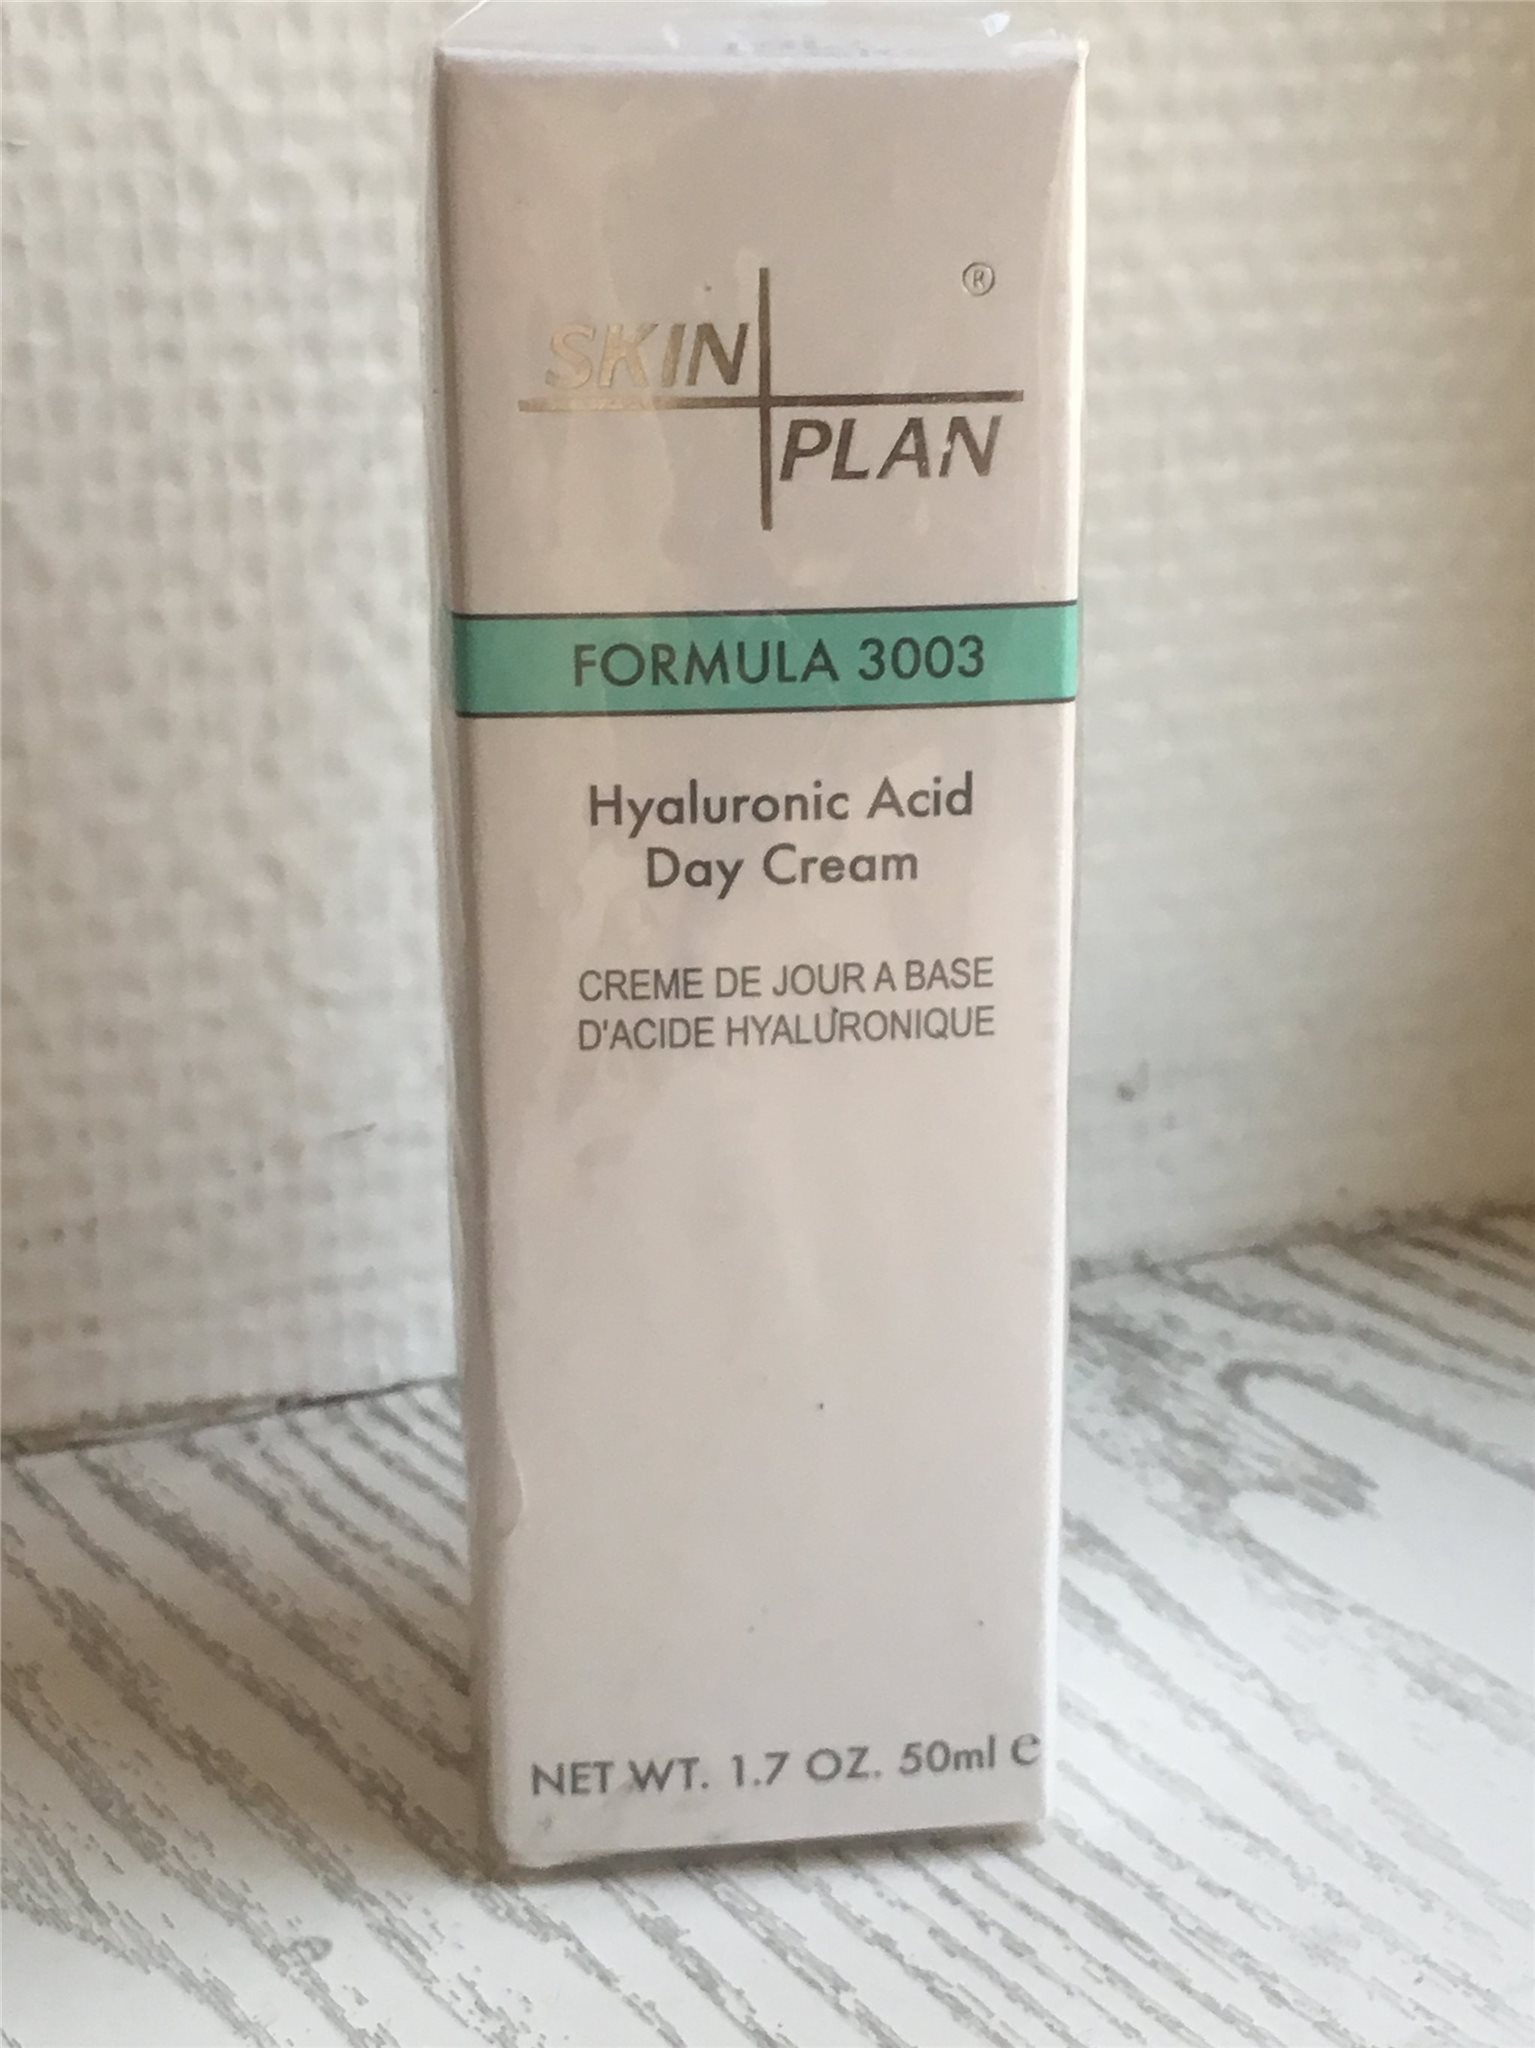 skinplan hyaluronic acid day cream